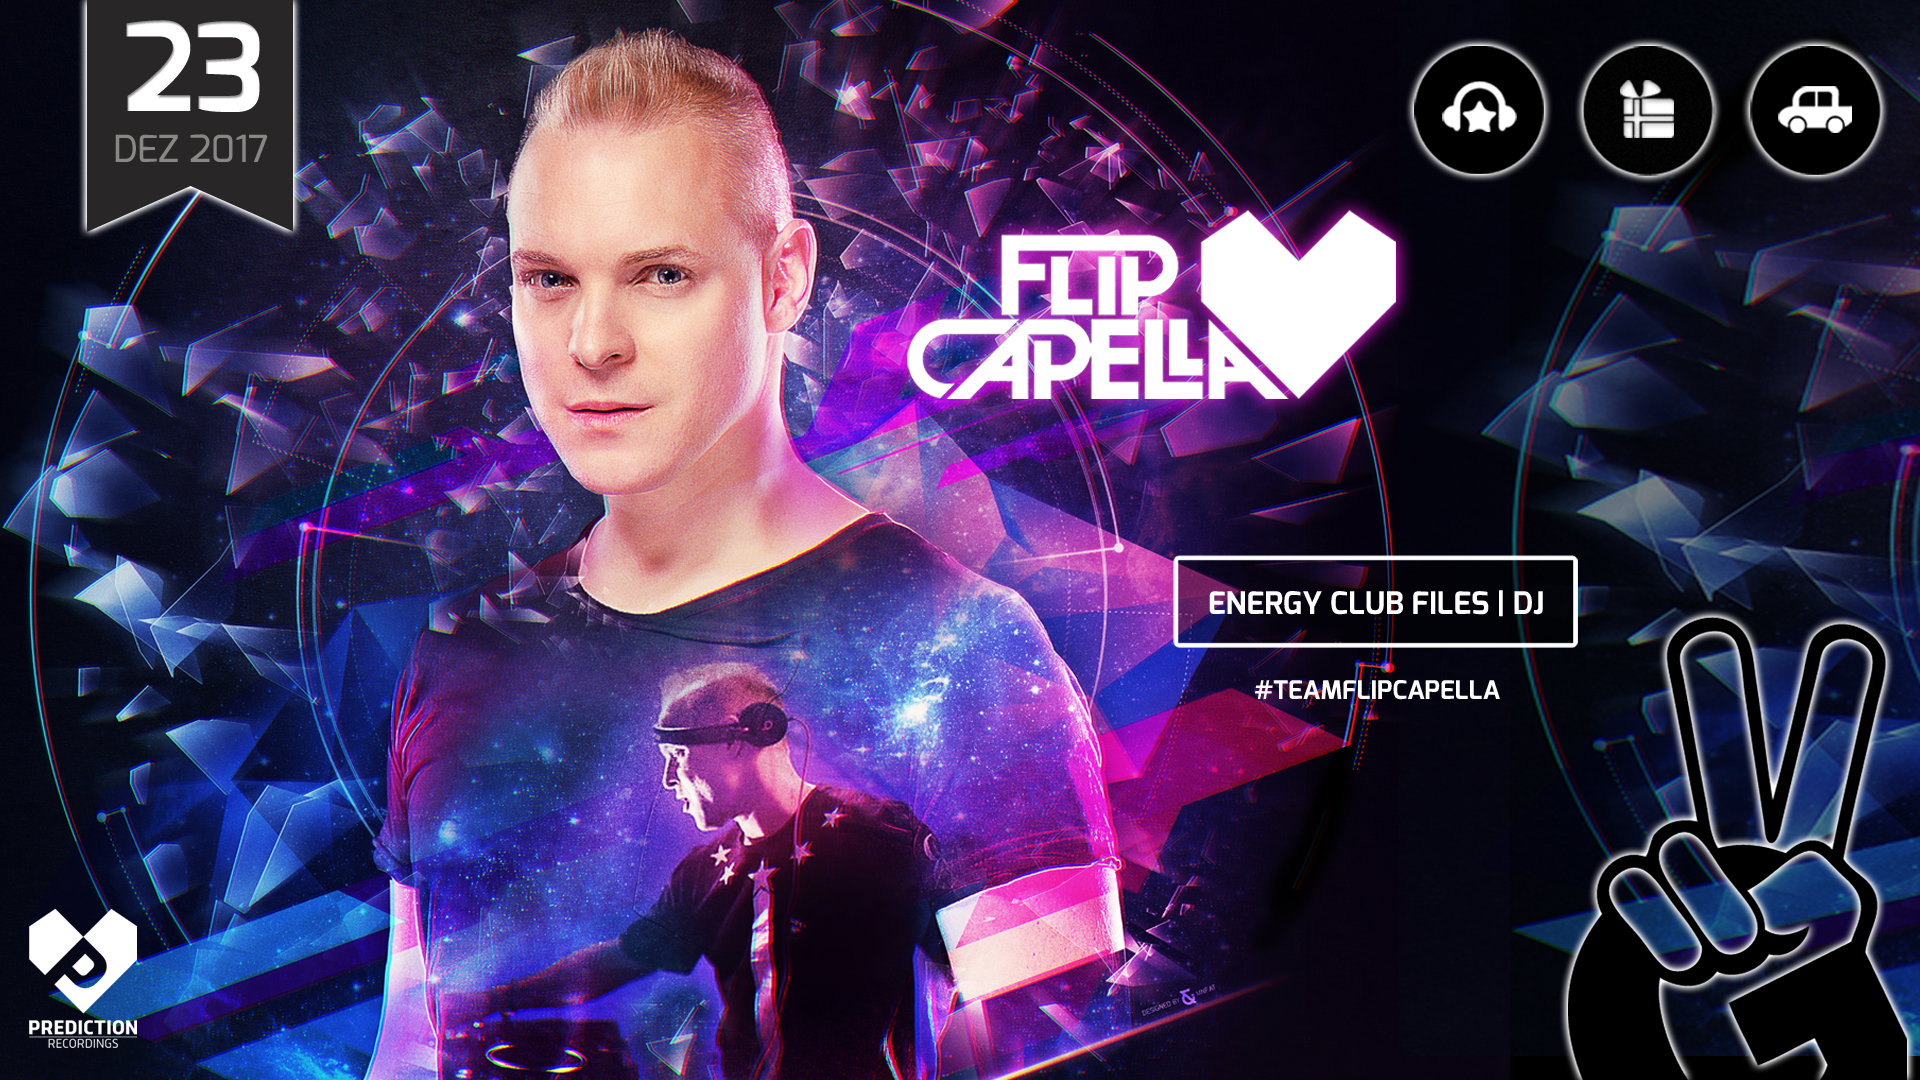 FLIP CAPELLA | EDM & Club Sound Edition